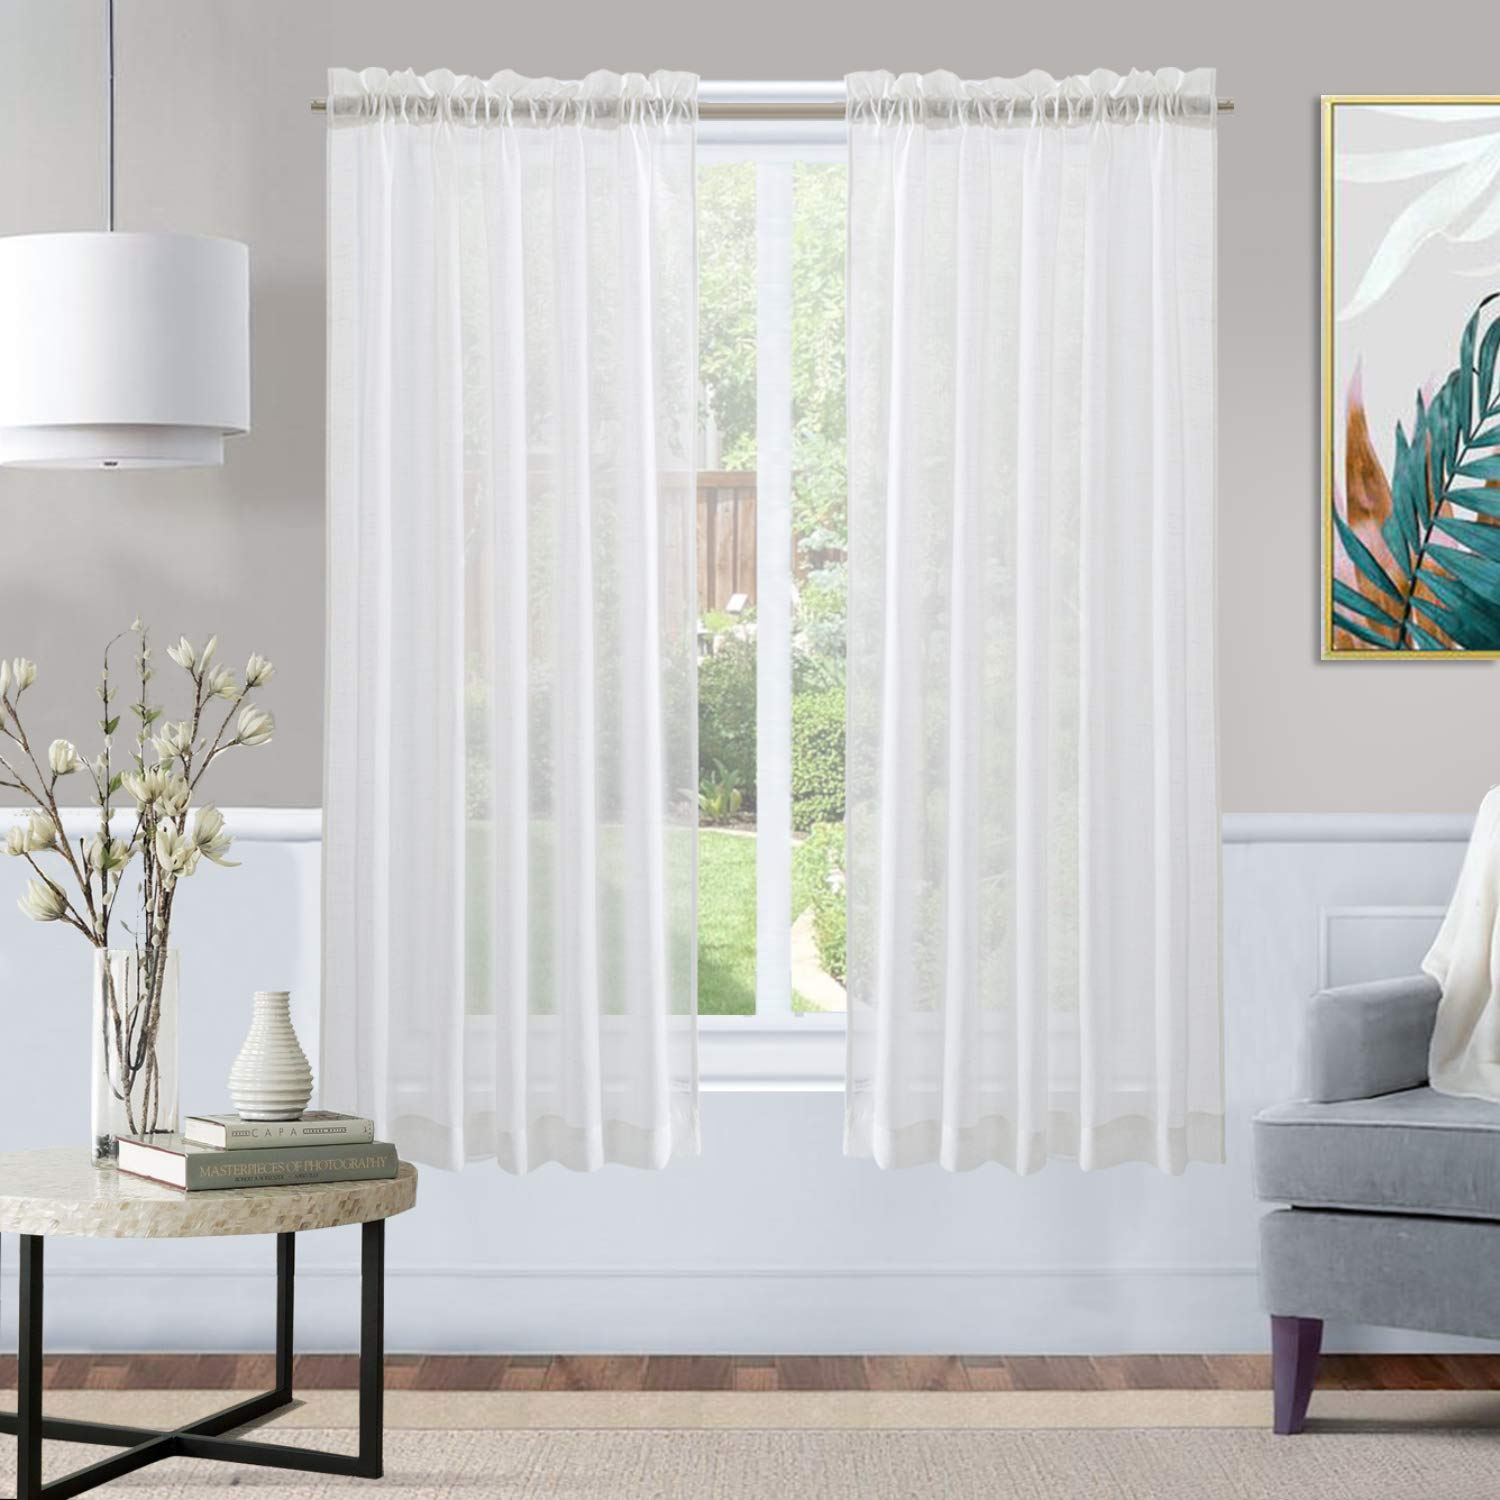 XWTEX Tier Curtains for Kitchen Linen Like Cafe Curtains Privacy Semi Sheer  Half Window Curtains for Living Room, 2 Panels, 45 Inches Long, White